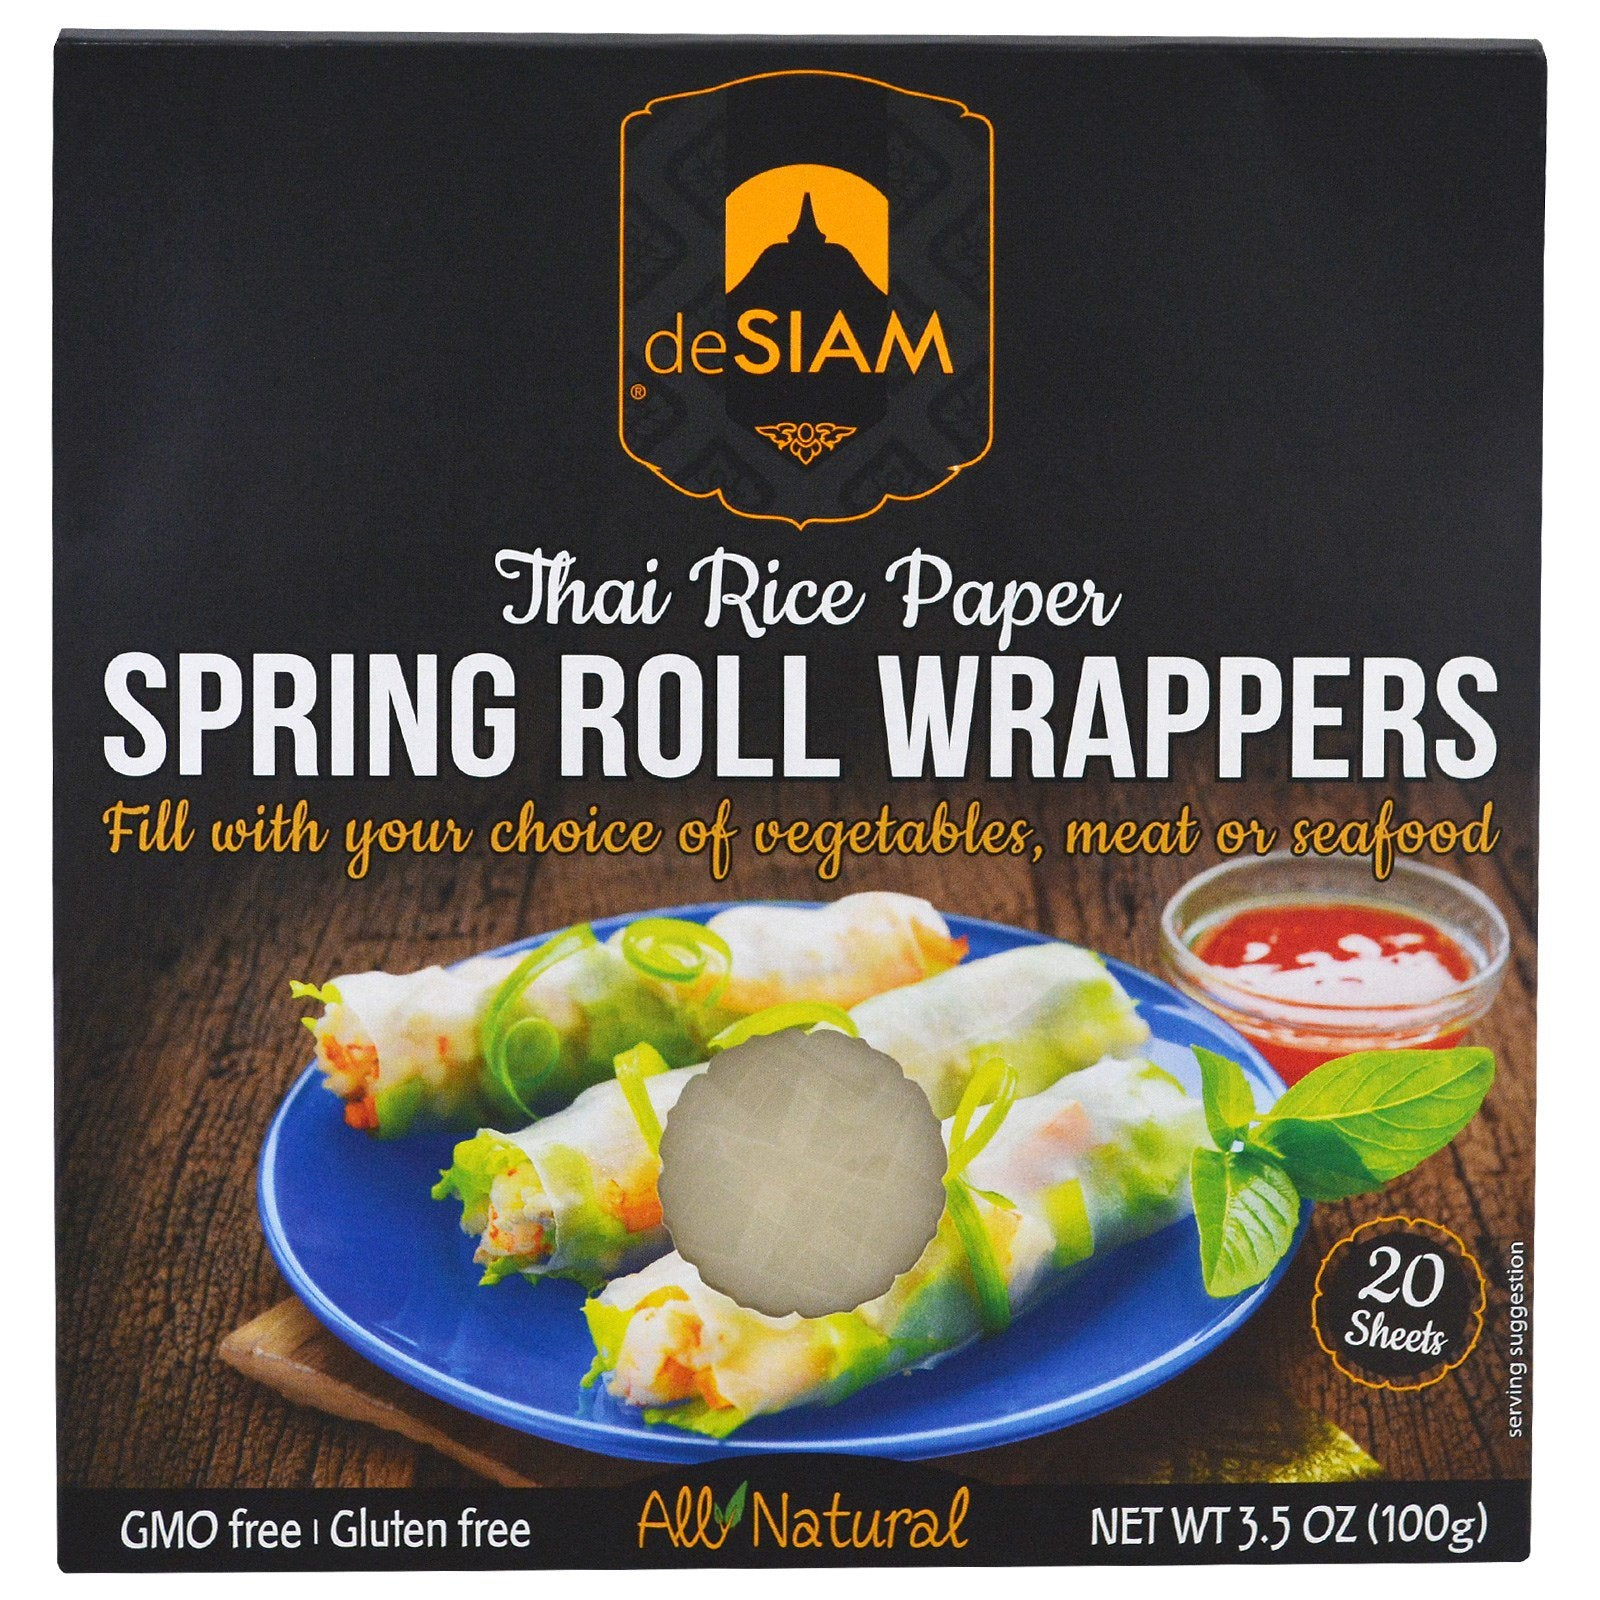 Thai Rice Paper Spring Roll Wrappers